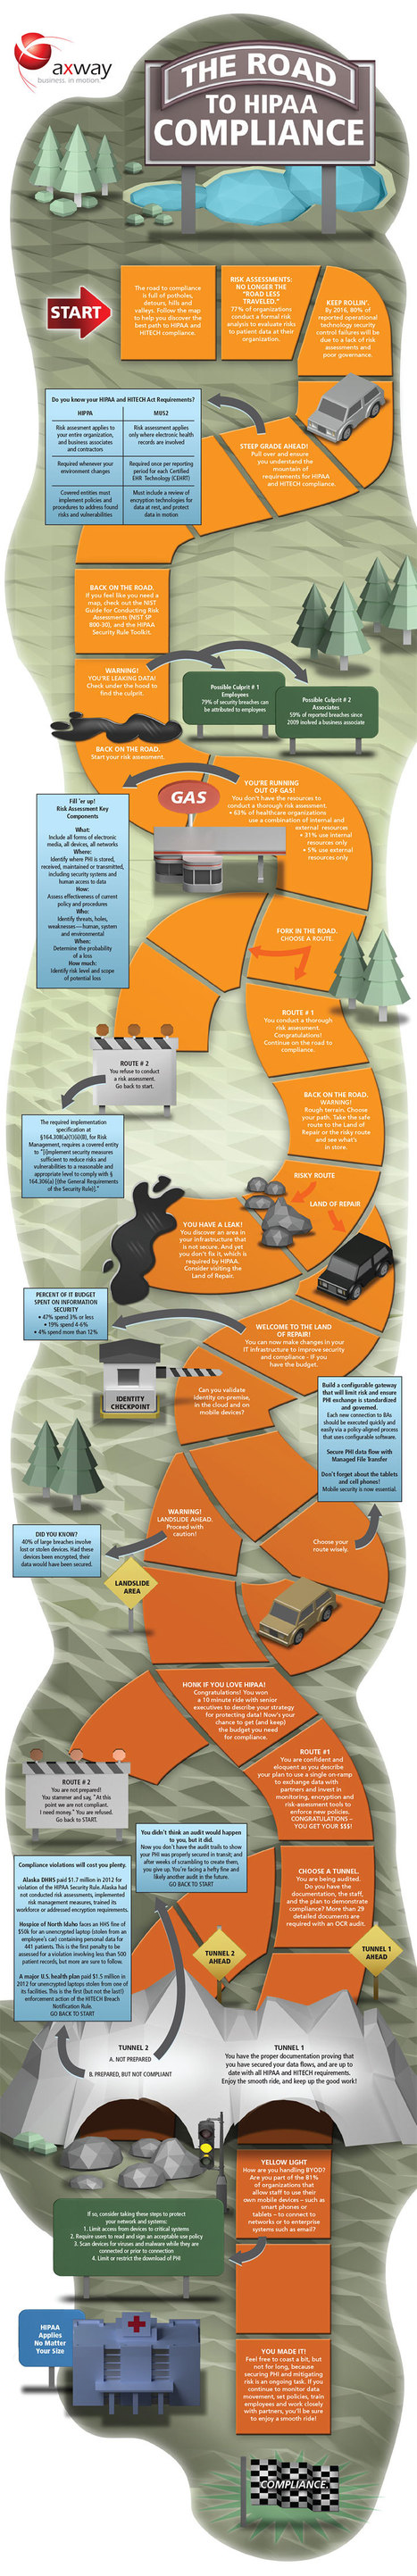 INFOGRAPHIC: The Road To HIPAA Compliance | Cloud Central | Scoop.it